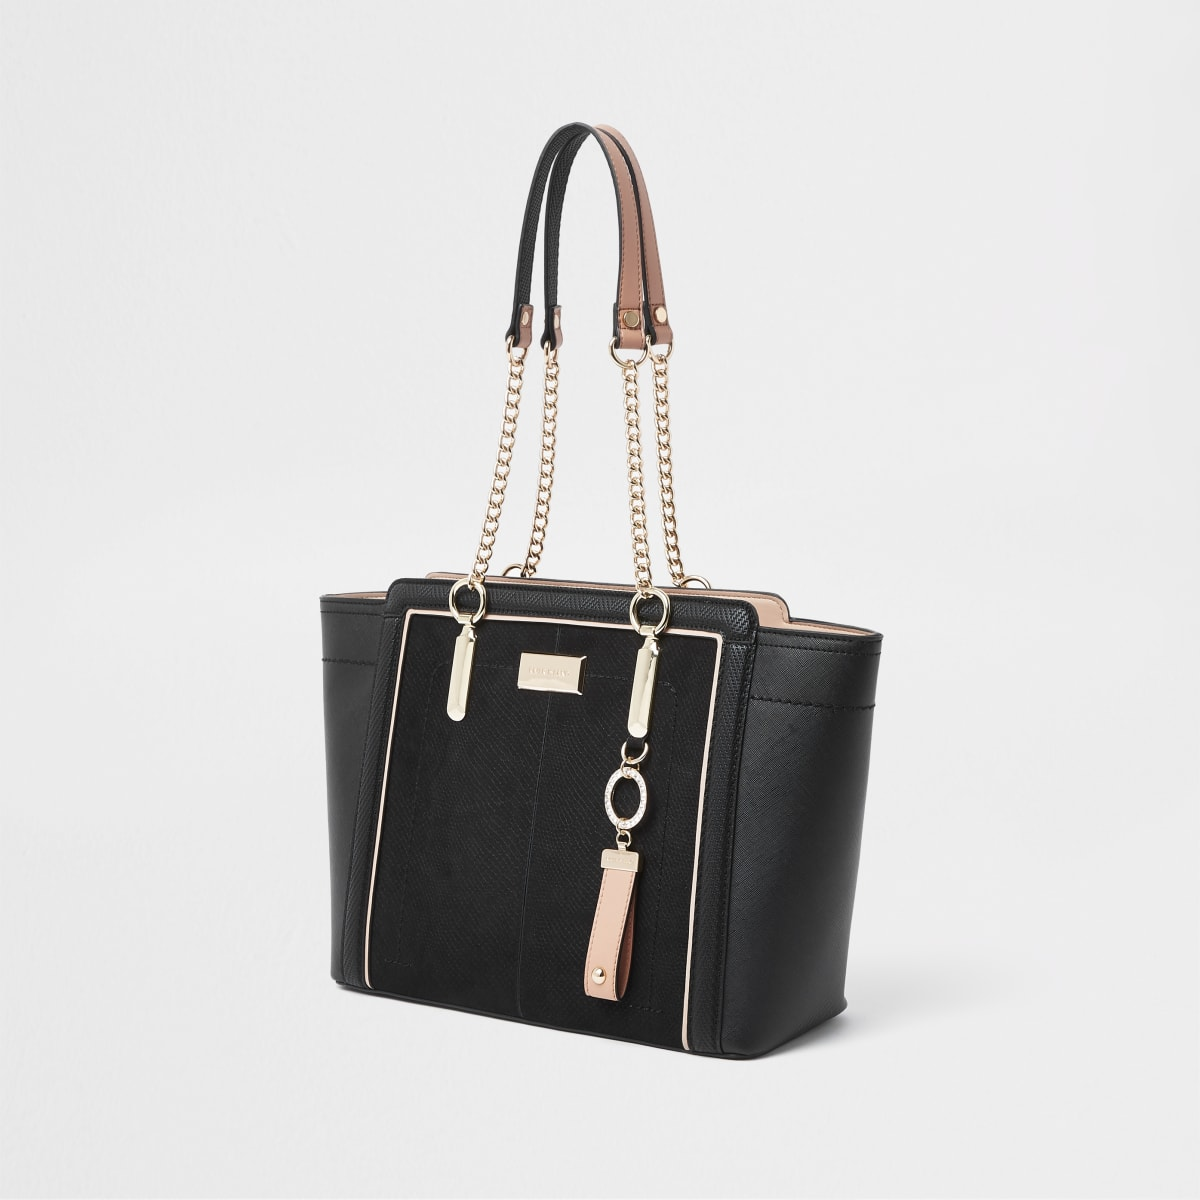 Black winged chain handle tote bag